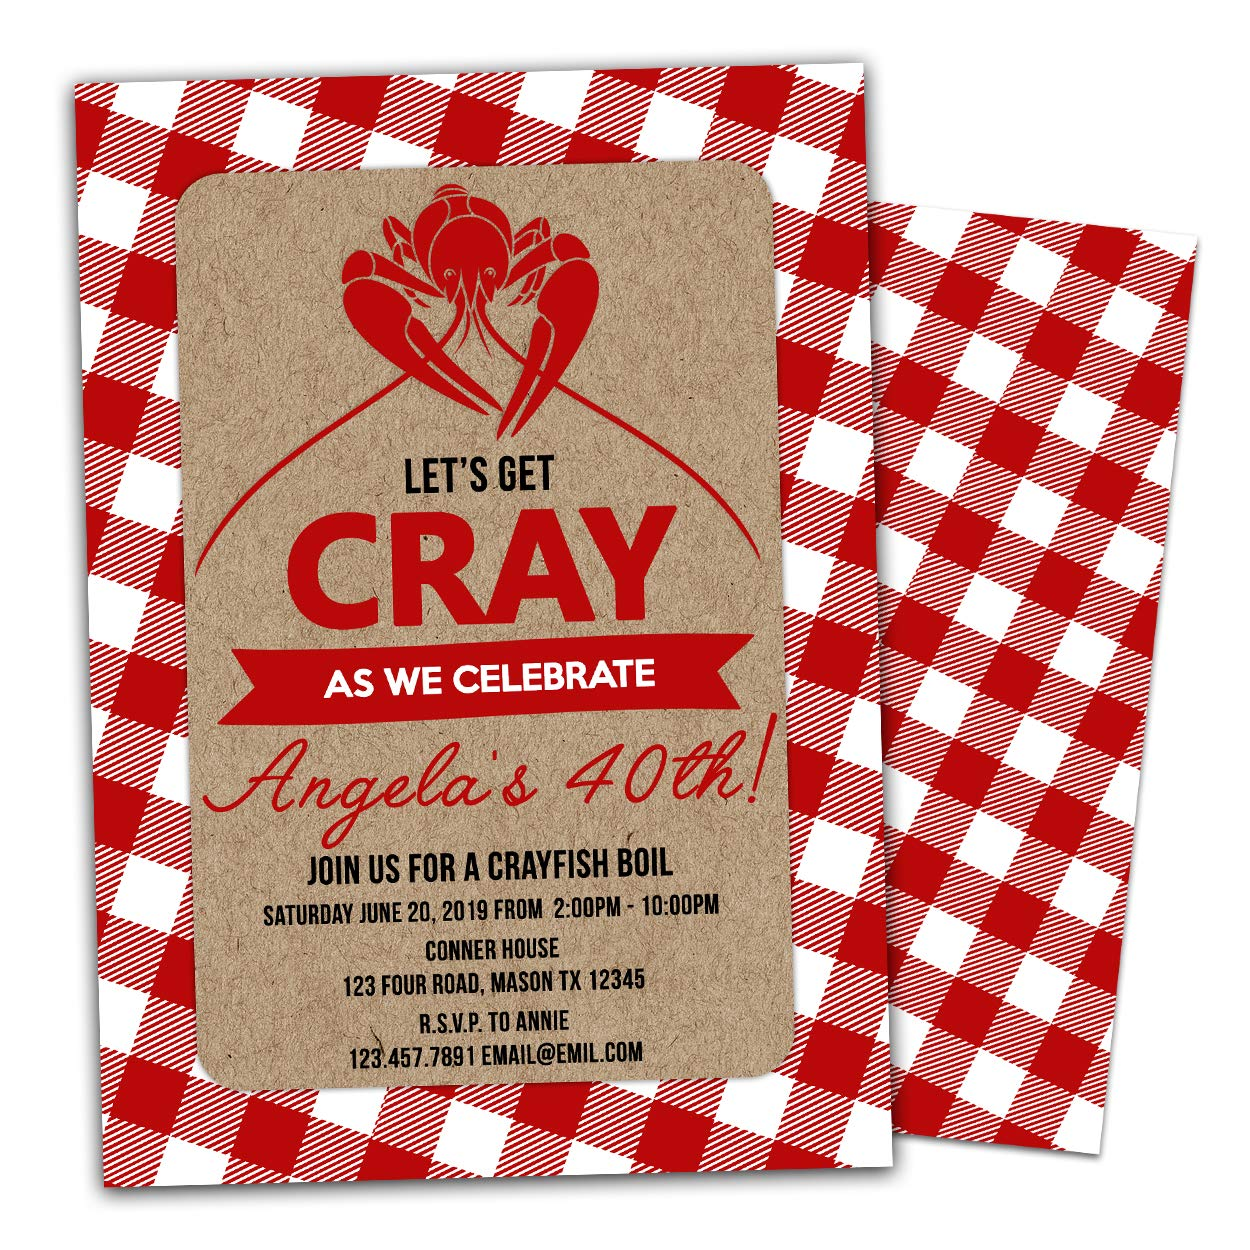 graphic relating to Crawfish Boil Invitations Free Printable identified as : Crawfish Boil Invites Birthday Cookout Cray